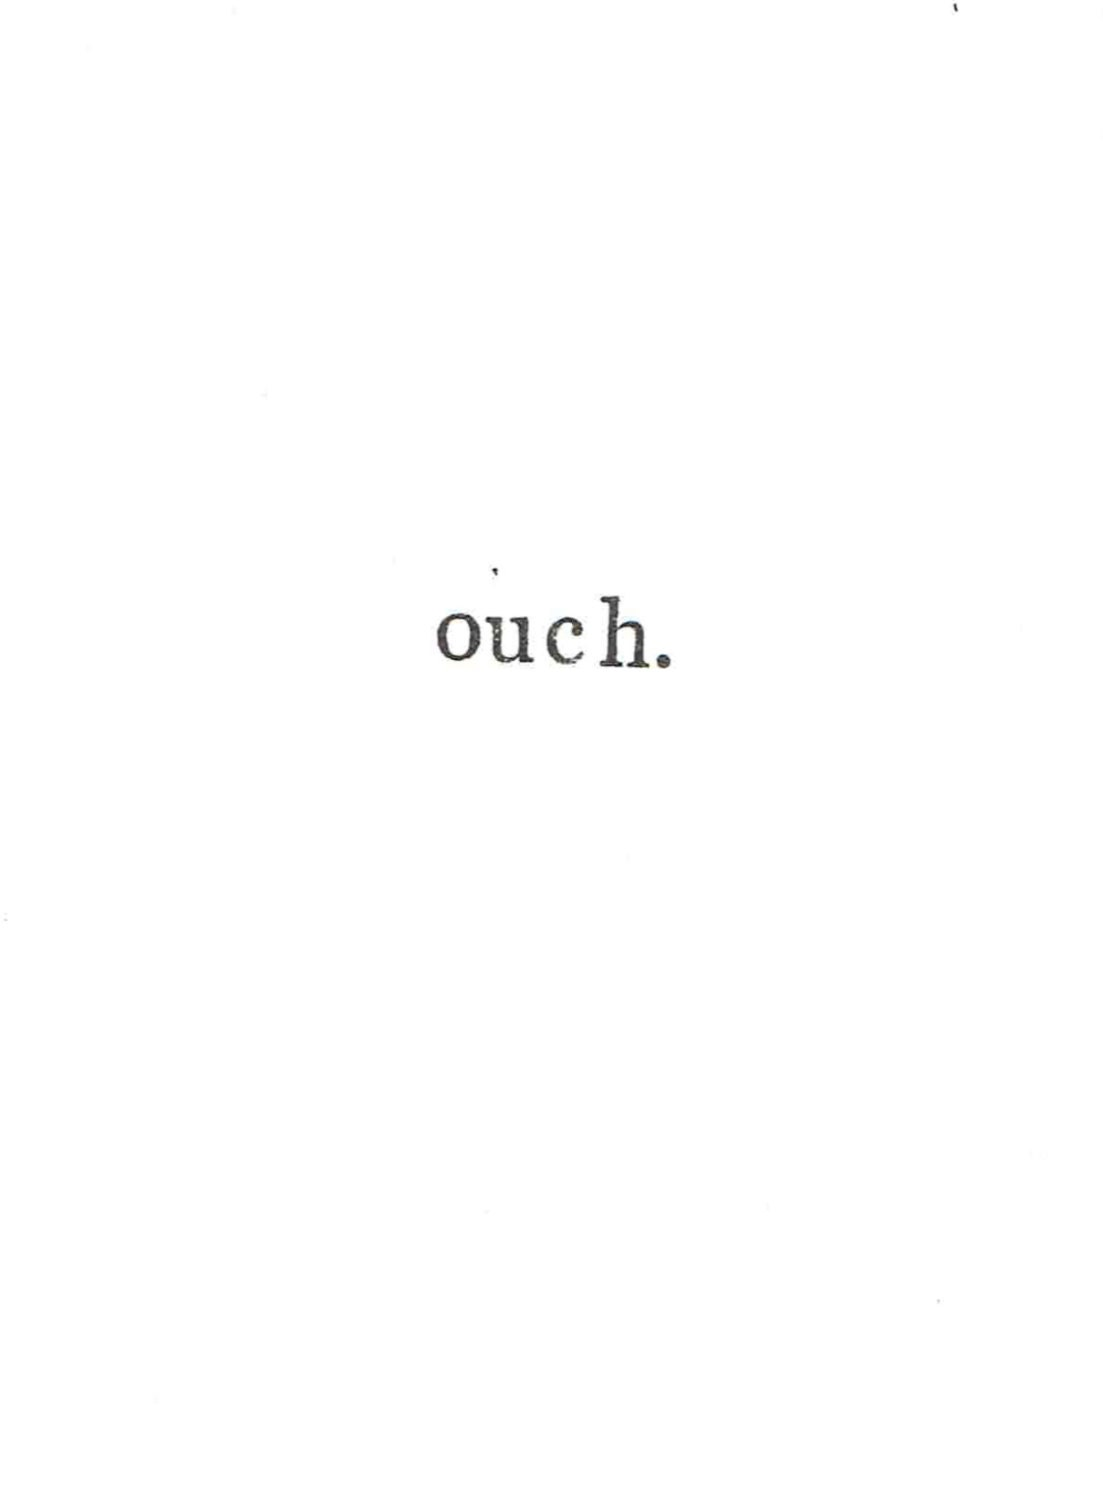 Hipster Tumblr Quotes Black And White Hipster Quotes Tumblr